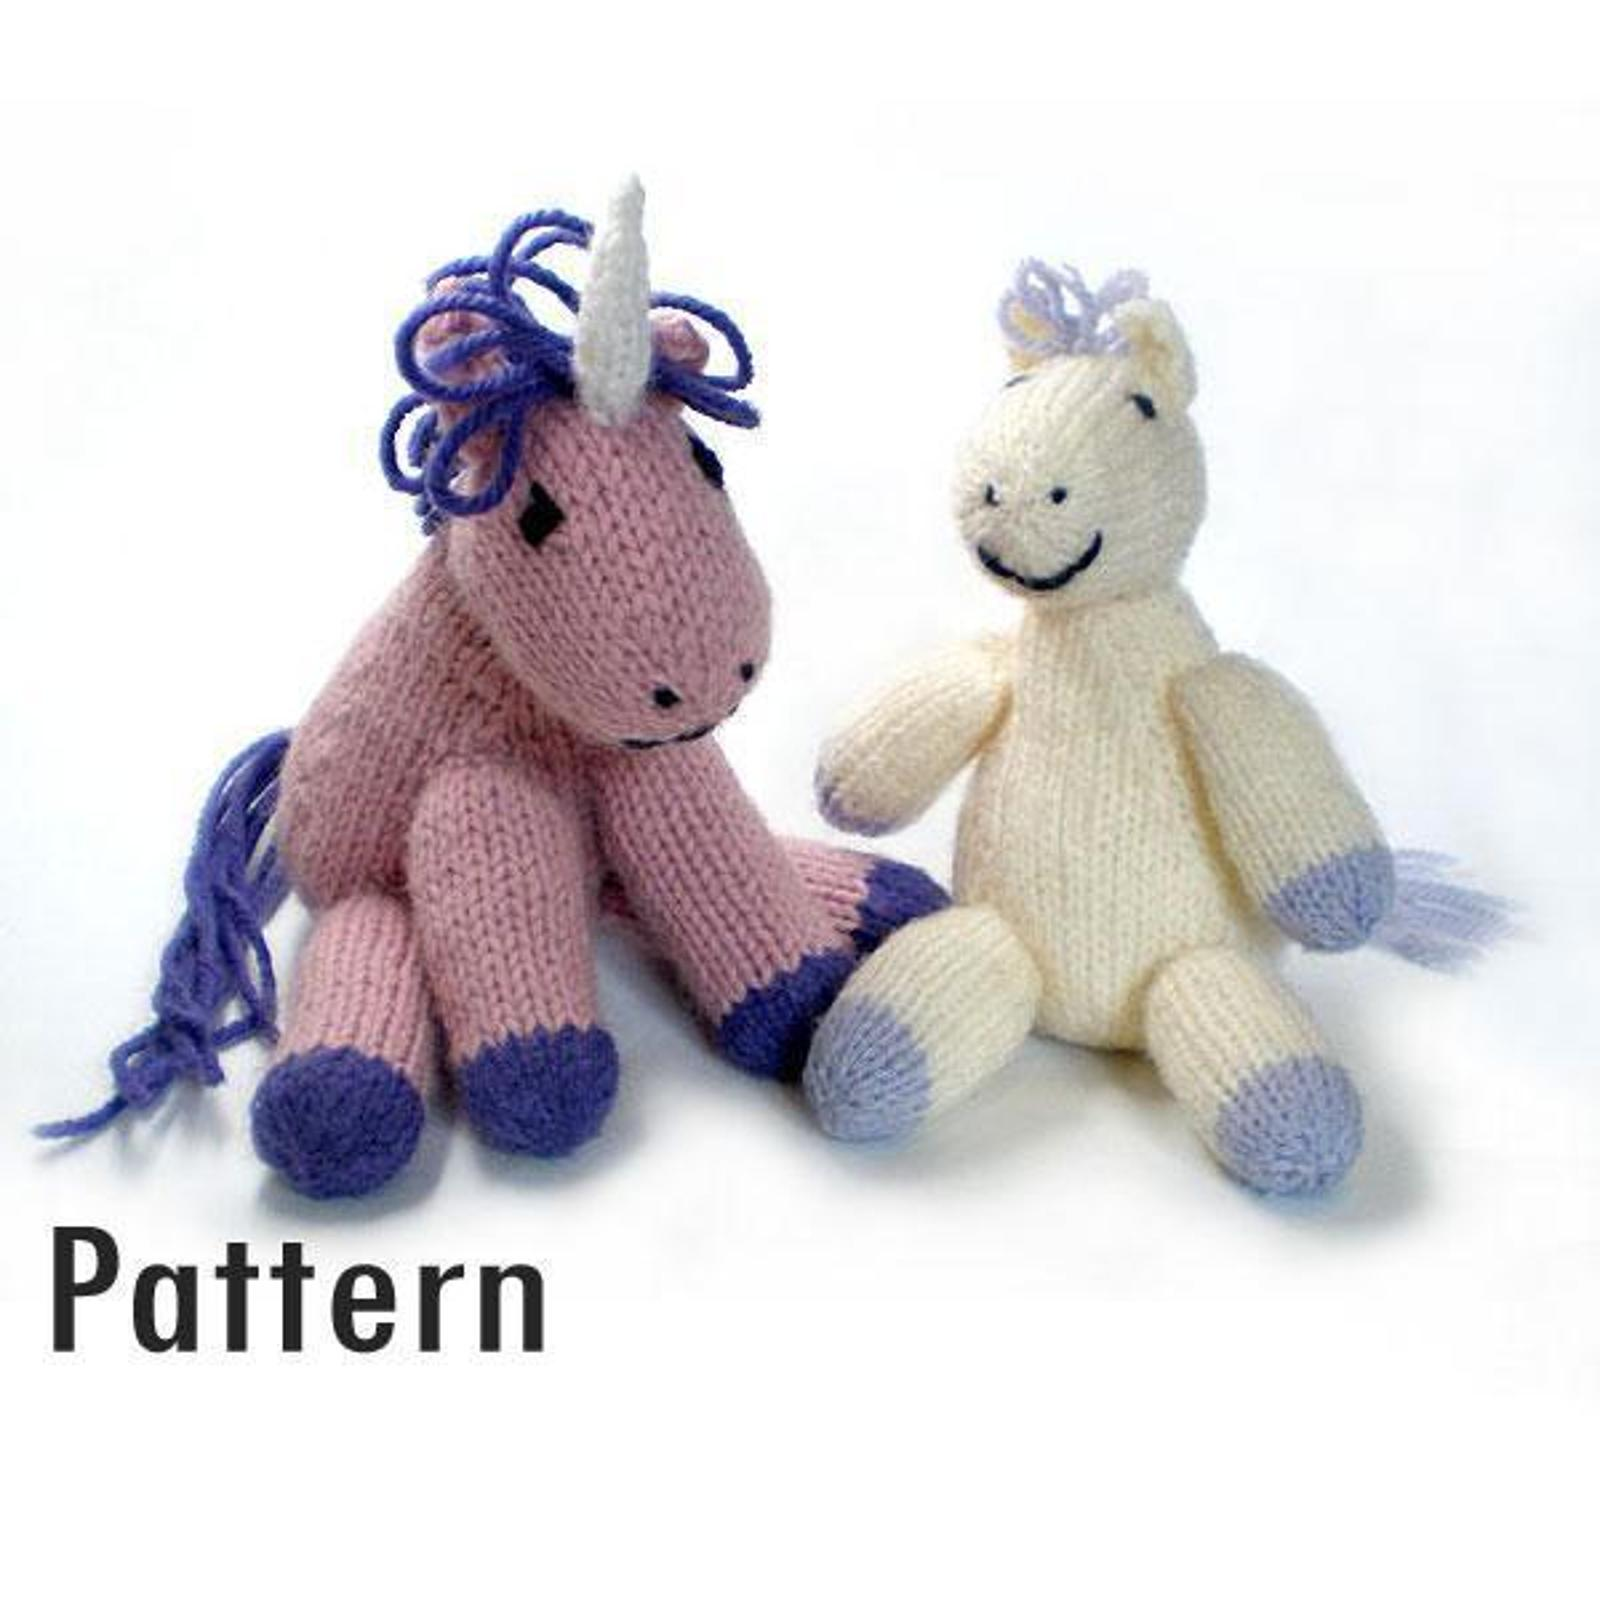 Pony and Unicorn Knitting Pattern